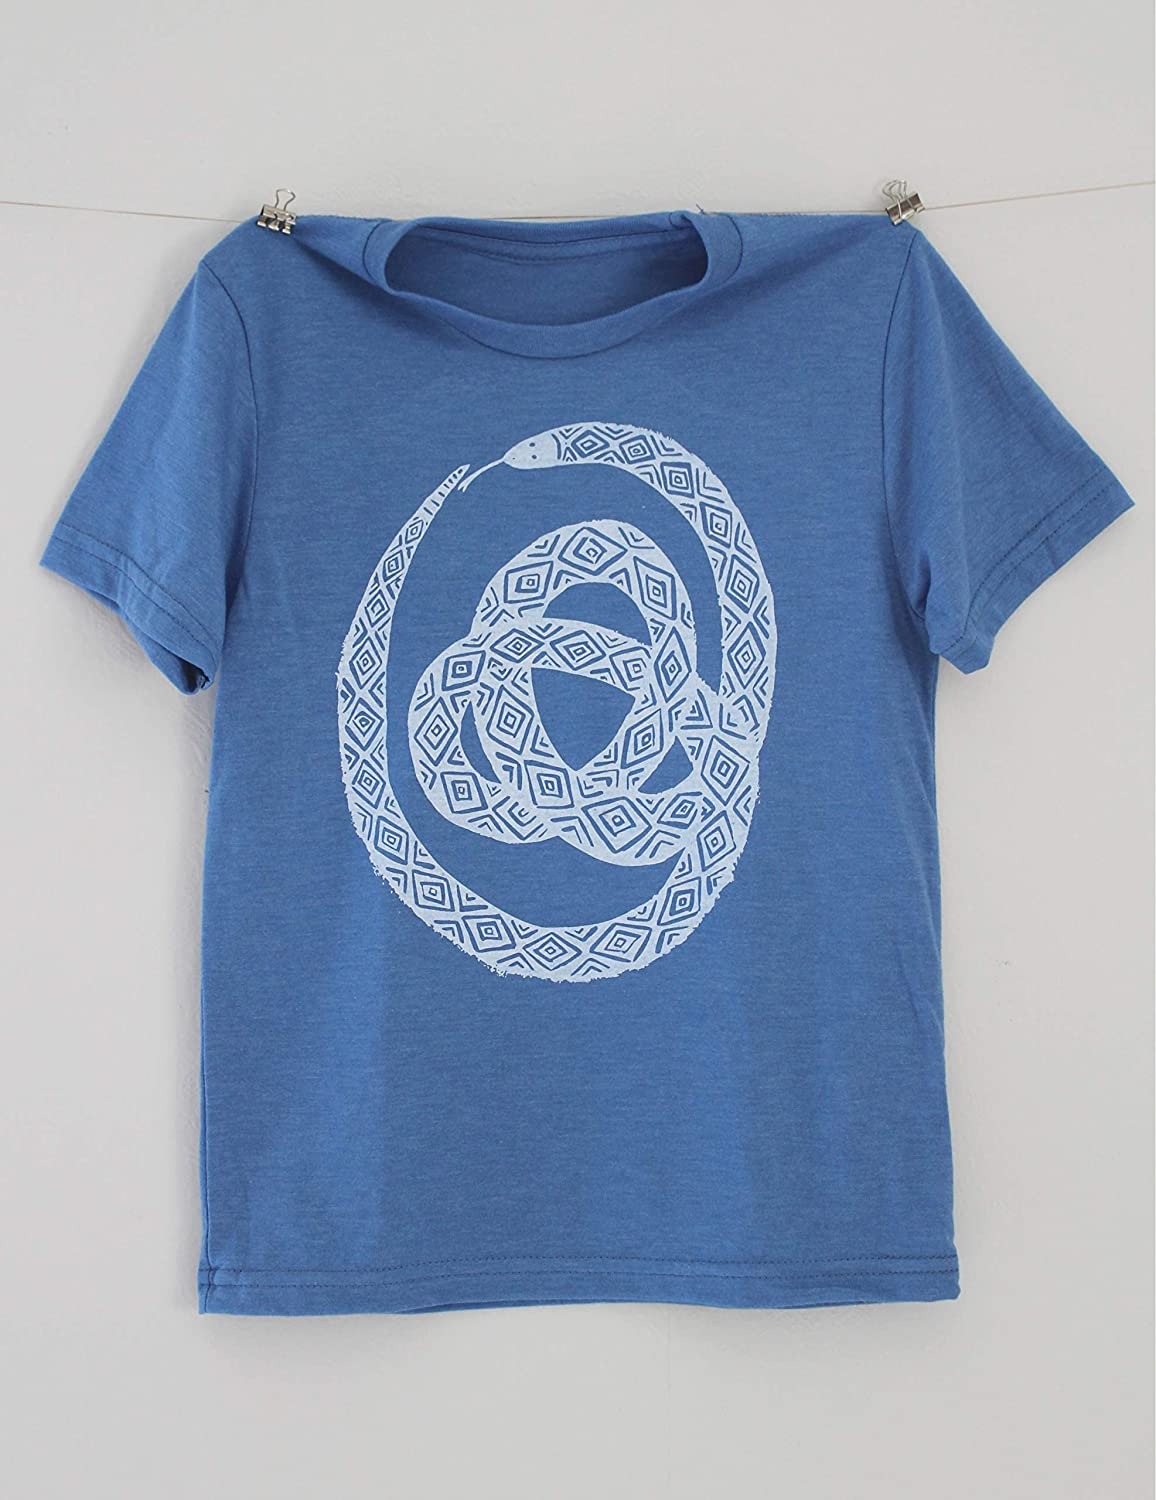 Ranking TOP15 Kids Tri-blend Snake T-shirt Unisex M Youth Sizing Handmade in Super sale